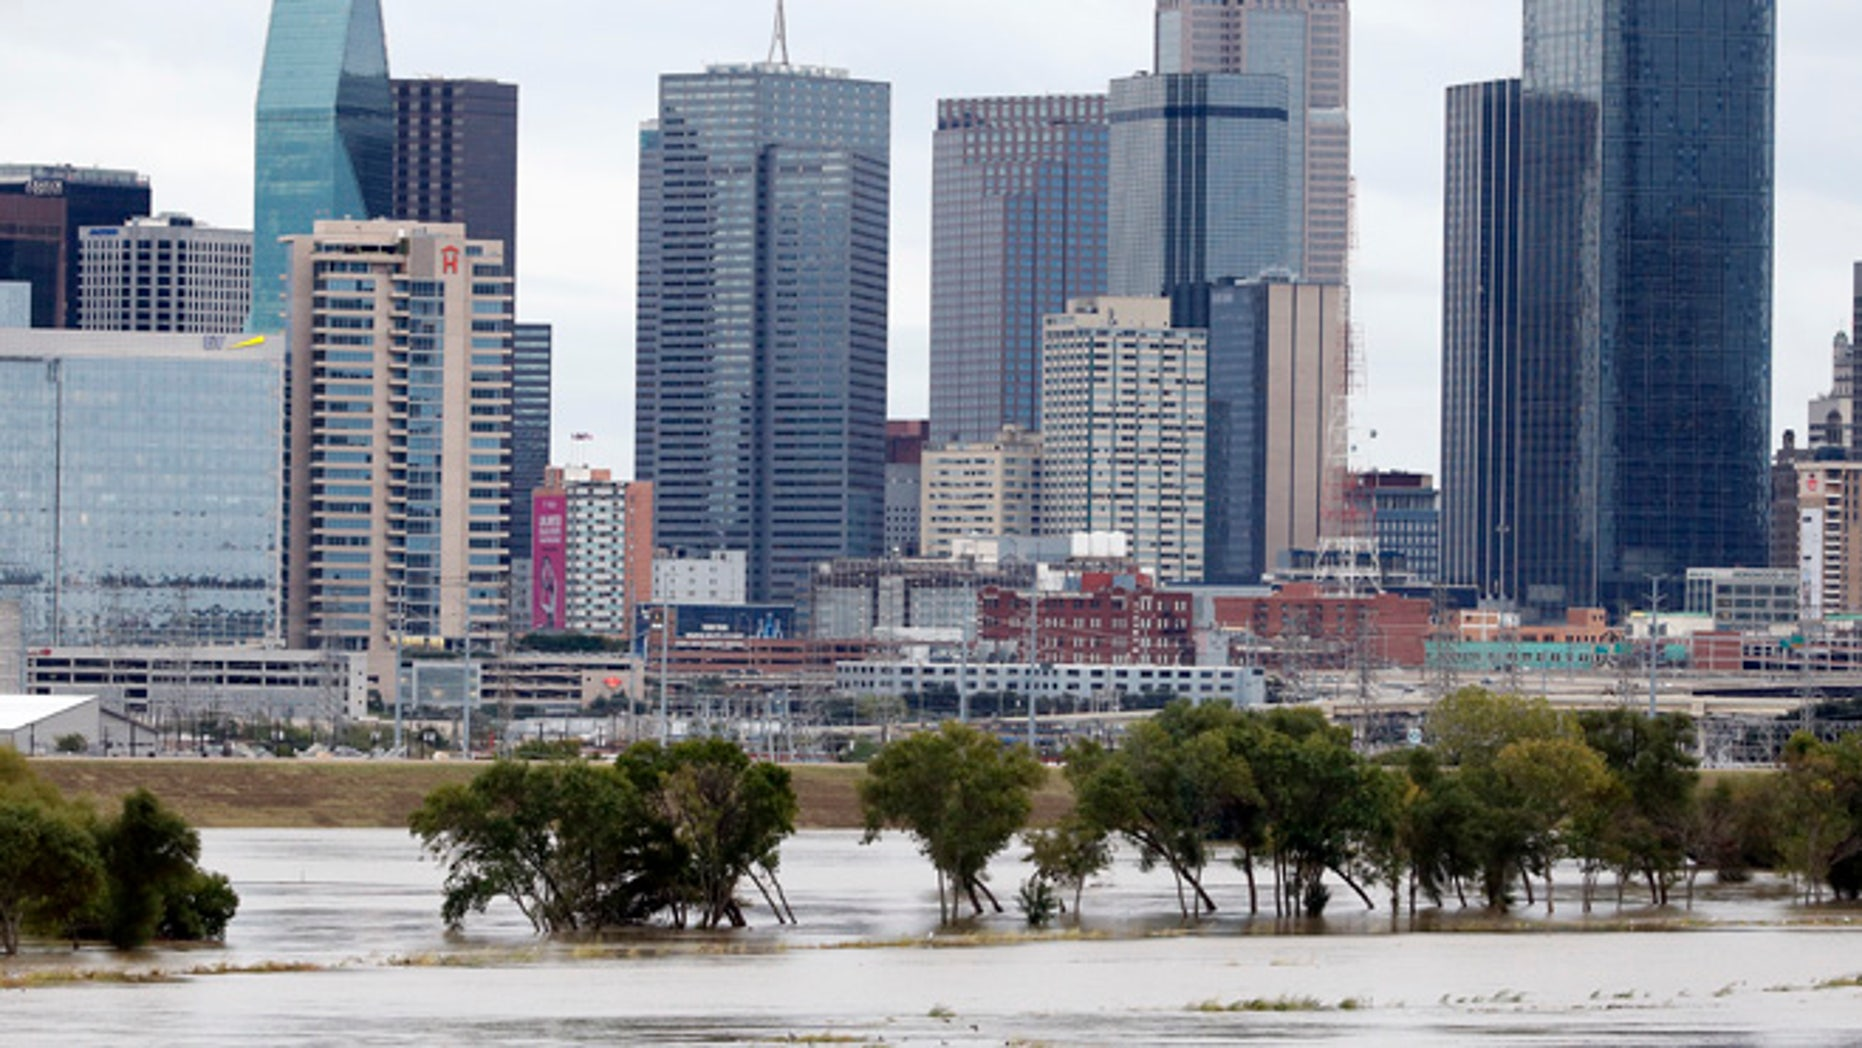 The rain-swollen Trinity River is seen with the city skyline in the background Saturday, Oct. 24, 2015, in Dallas. Southeast Texas was bracing for heavy rain late Saturday and into Sunday as the remnants of Hurricane Patricia combined with a powerful storm system that's been moving across Texas, flooding roads and causing a freight train to derail. (AP Photo/Tony Gutierrez)